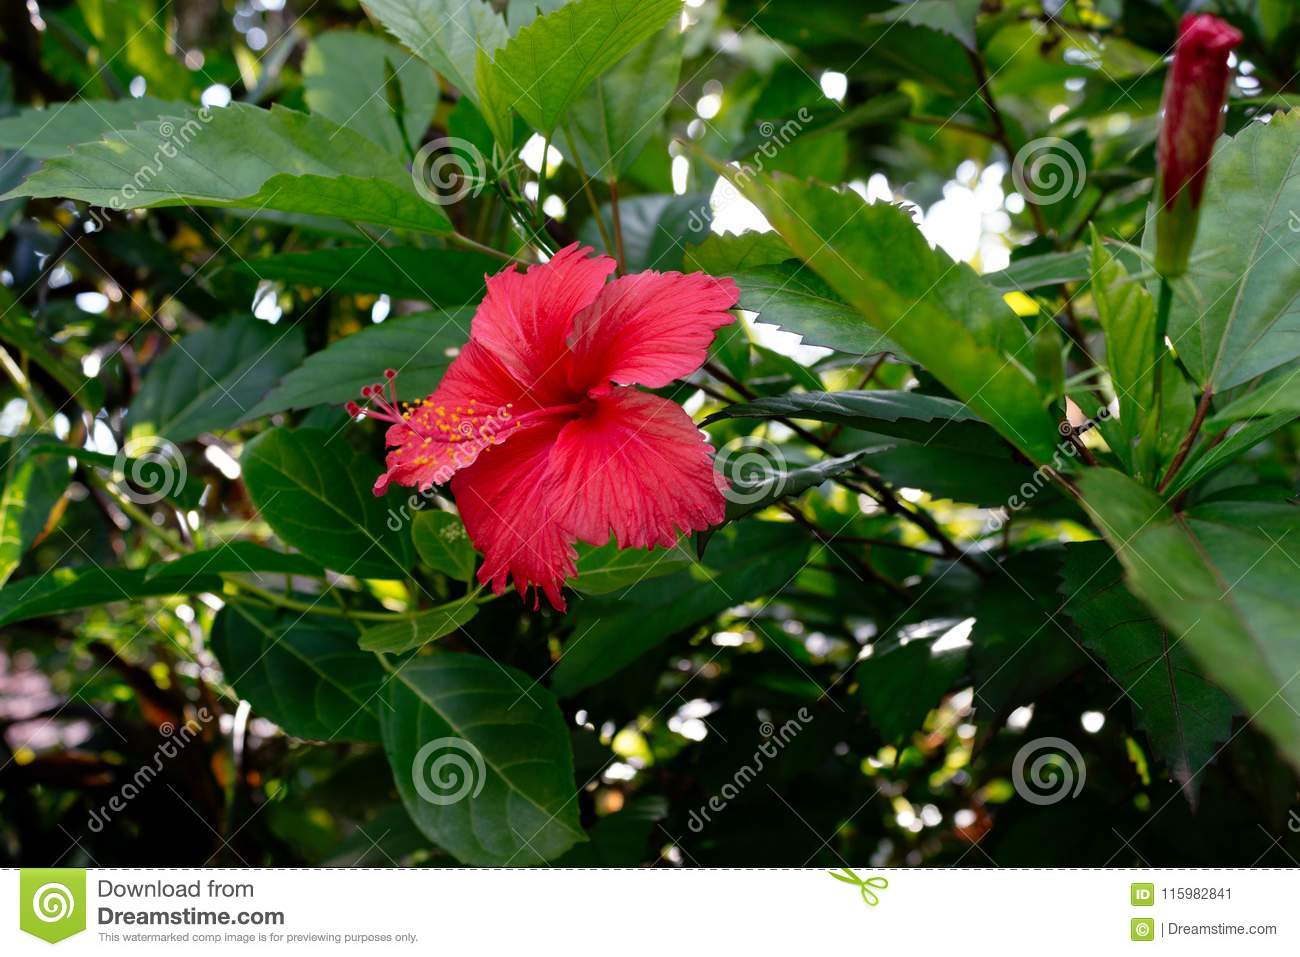 Sri Lanka National Flowers The Red Shoe Flower Or Hibiscus Rosa